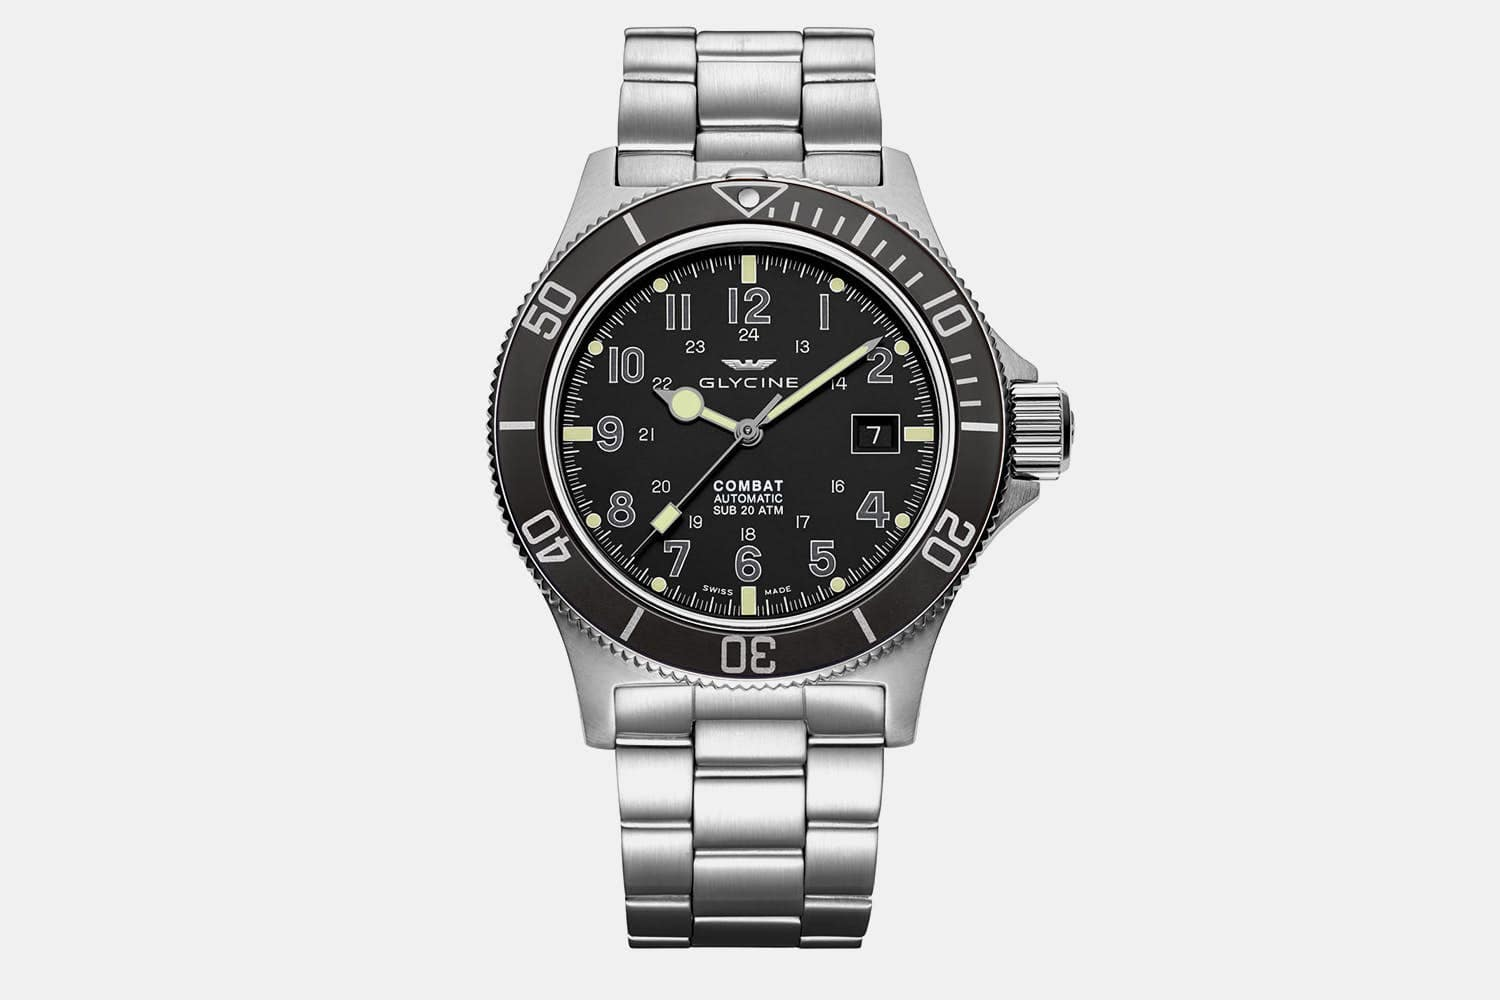 Glycine - Combat Sub Men's Automatic Watch (Various Styles) $379.99 + Free Shipping